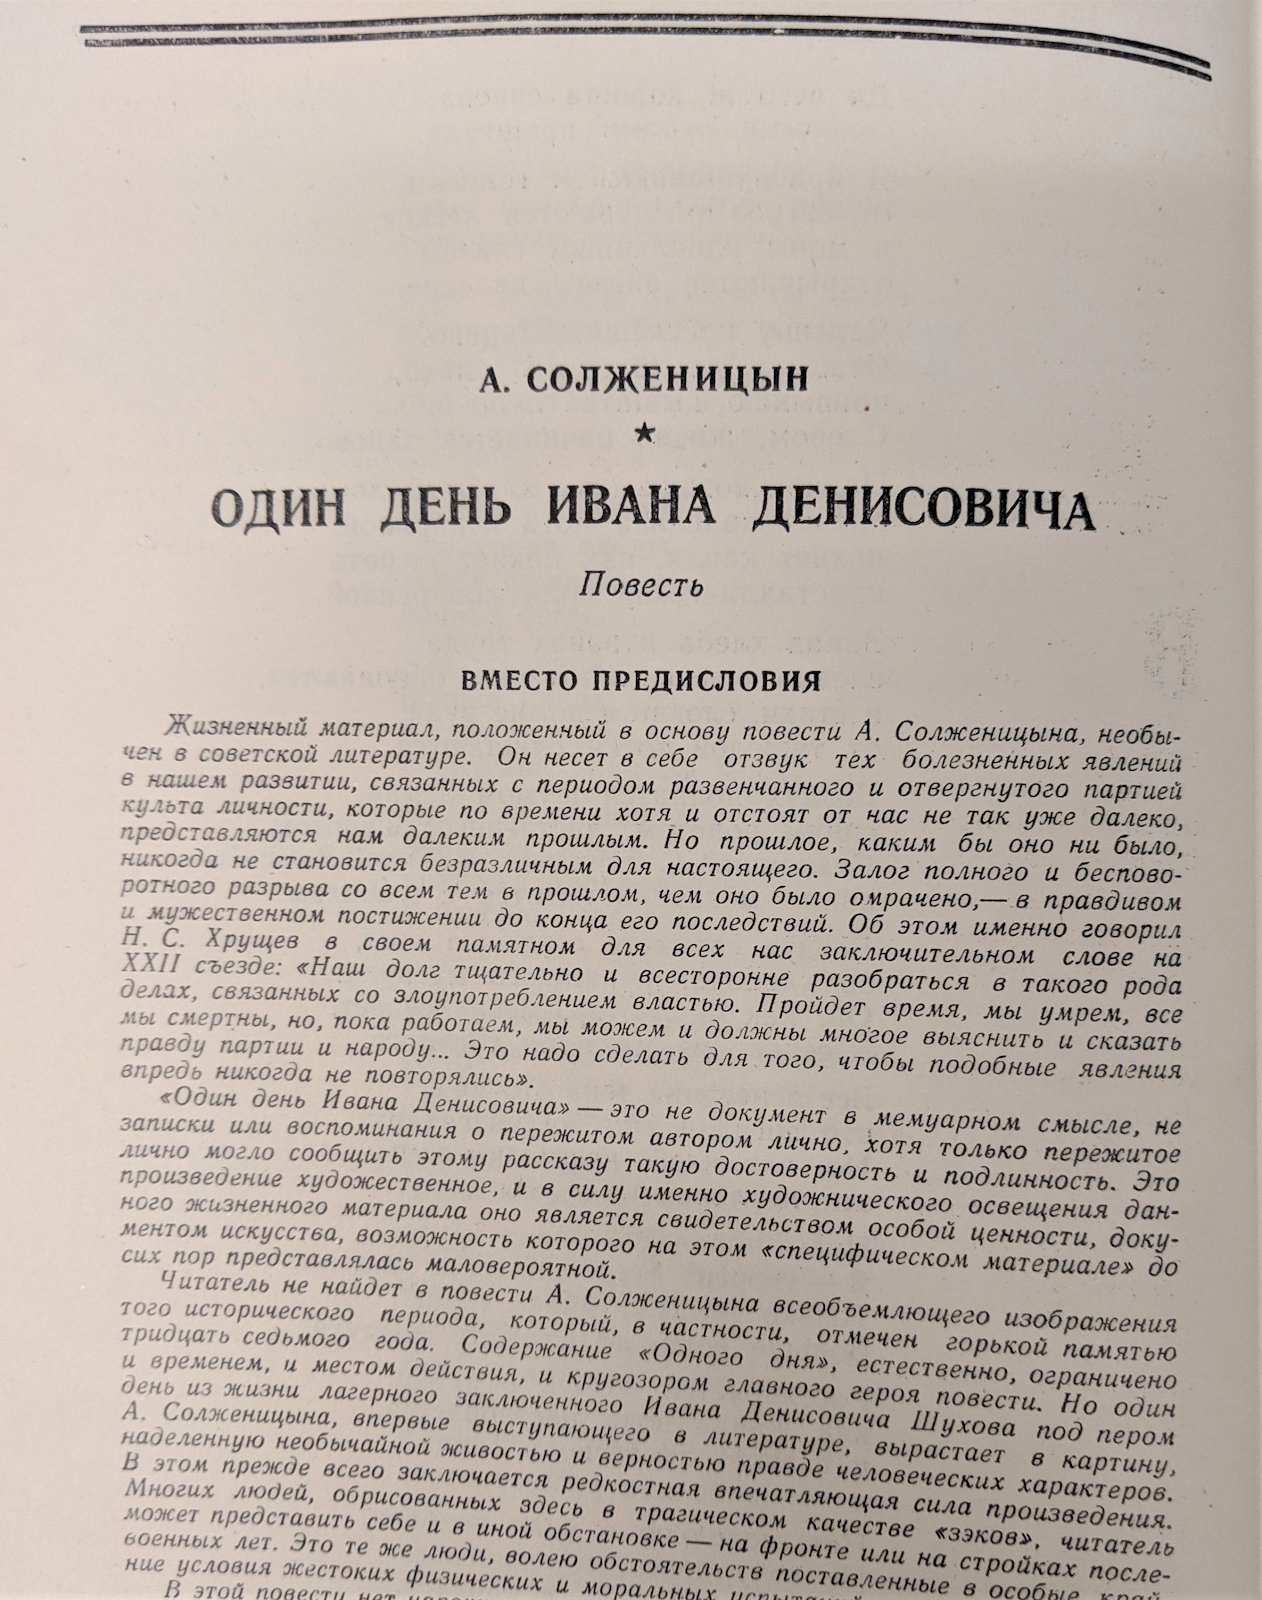 First page of the volume in Cyrillic.